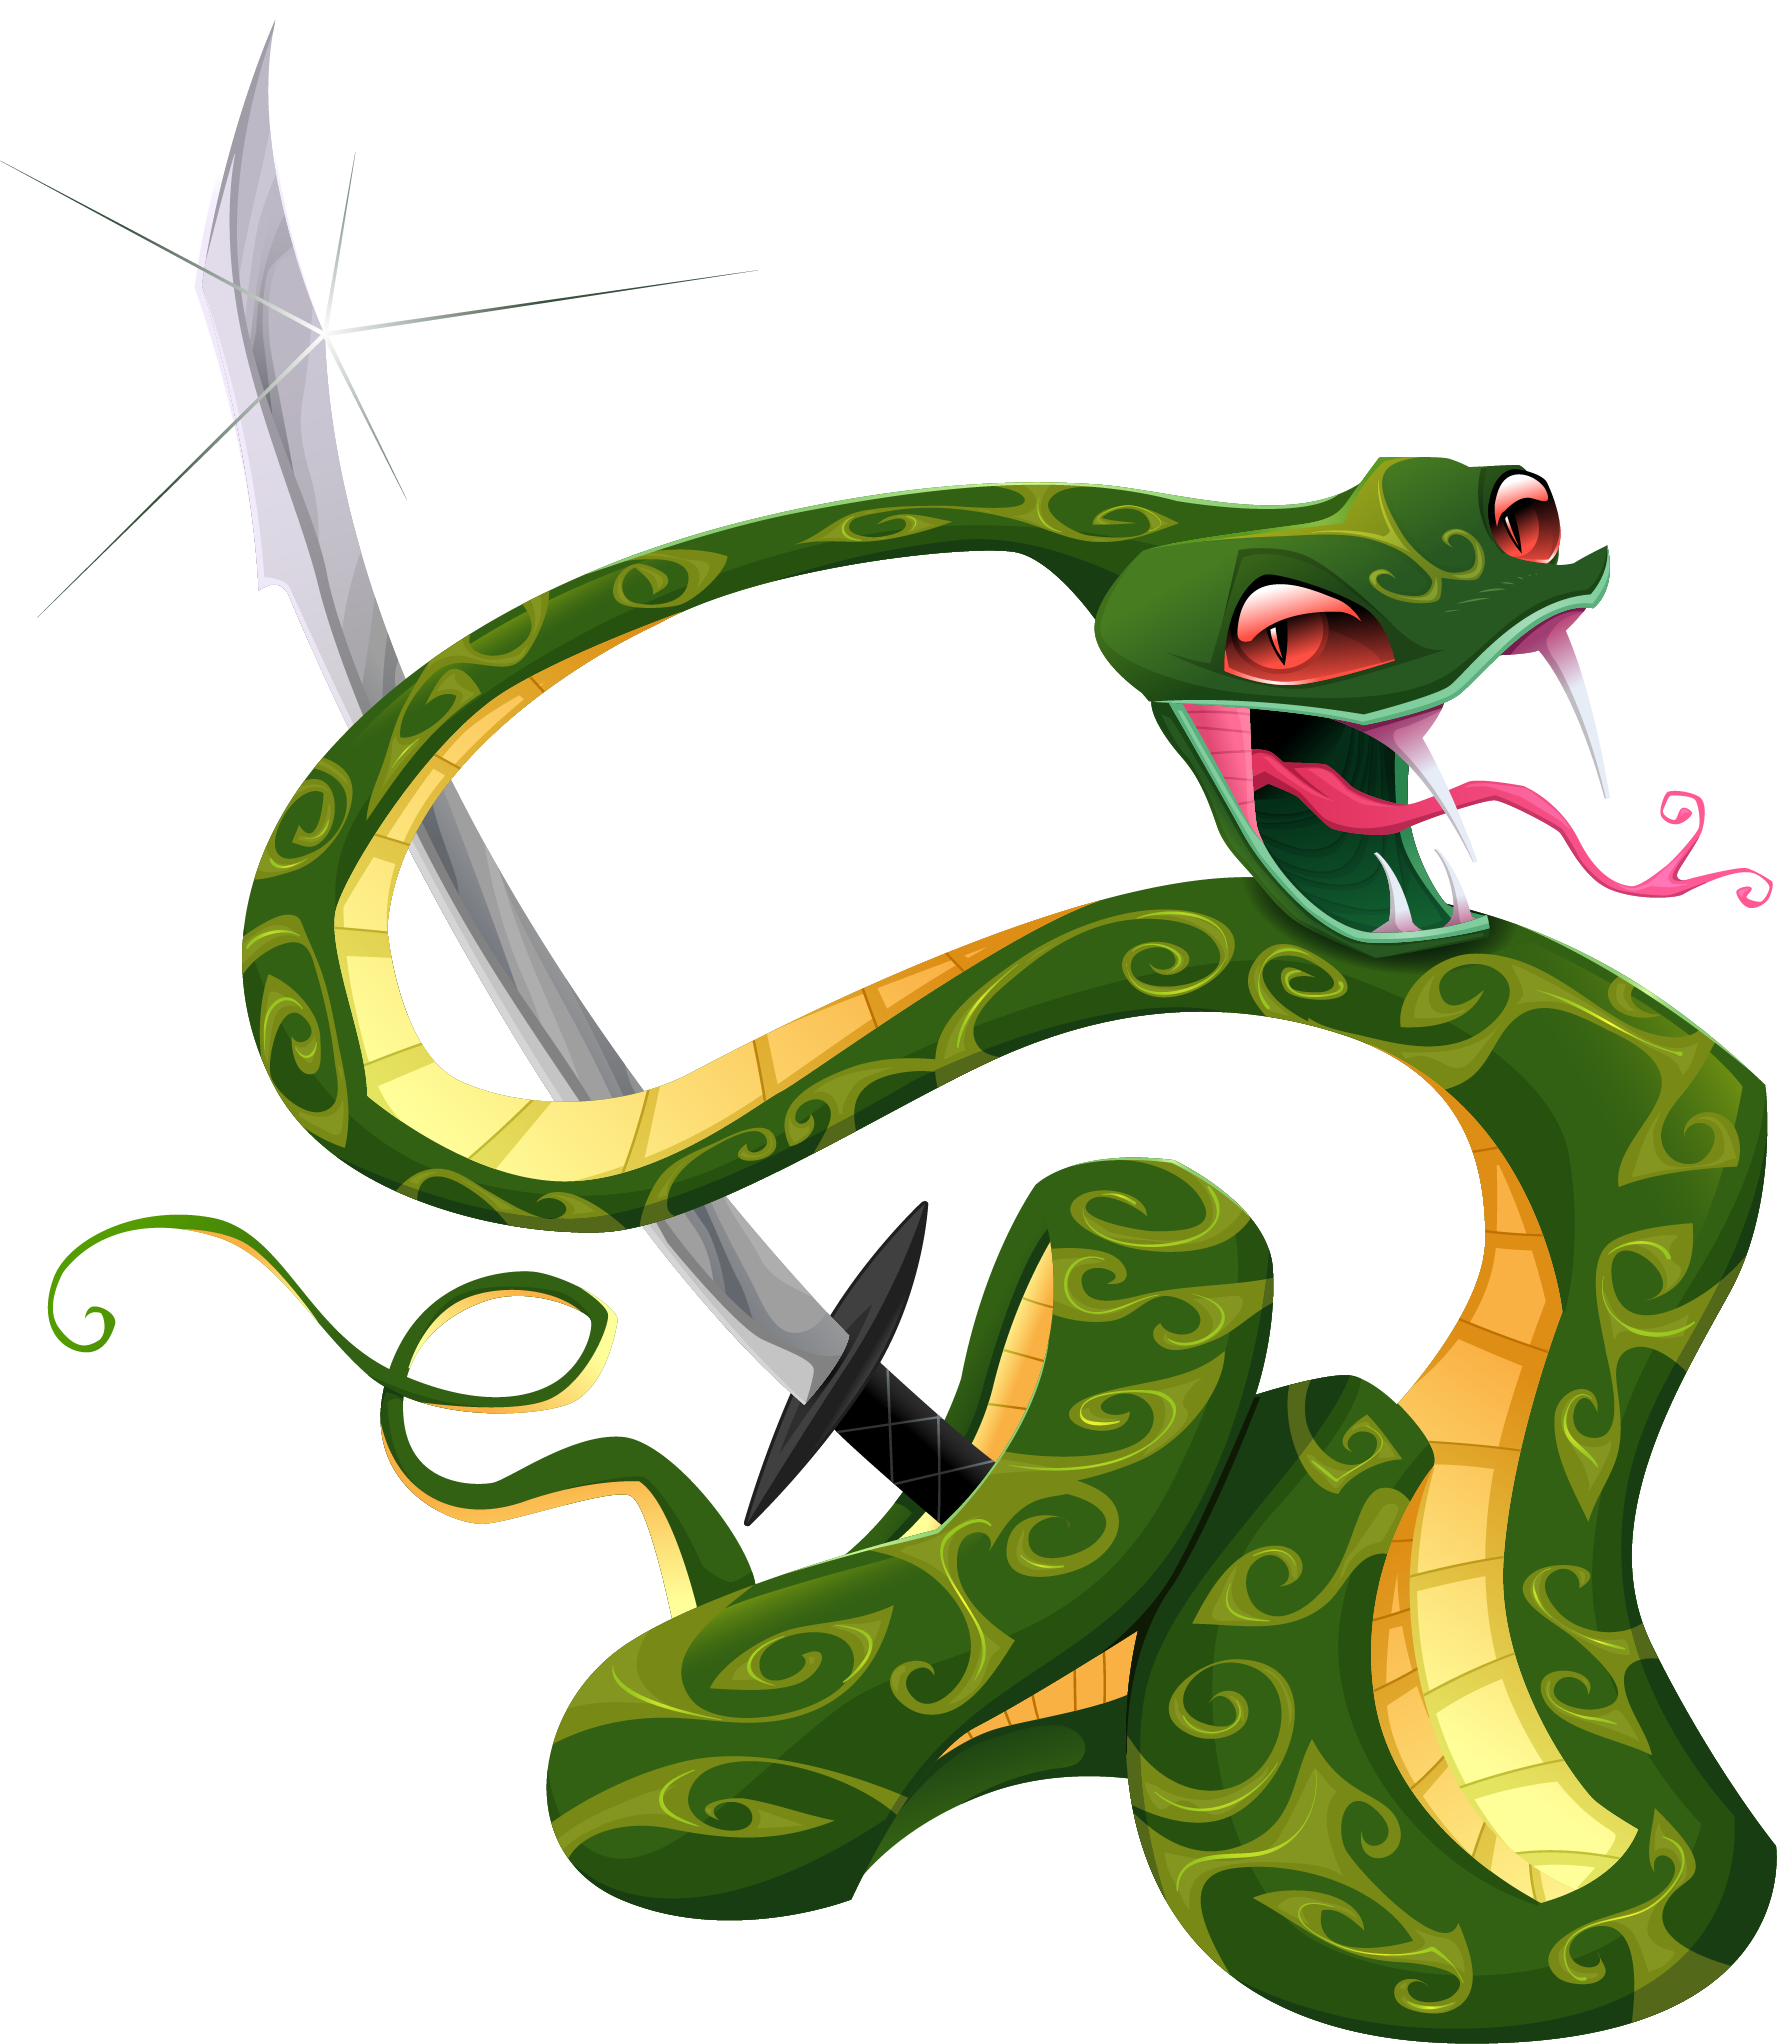 Tattoo png transparent quality. Clipart numbers snake